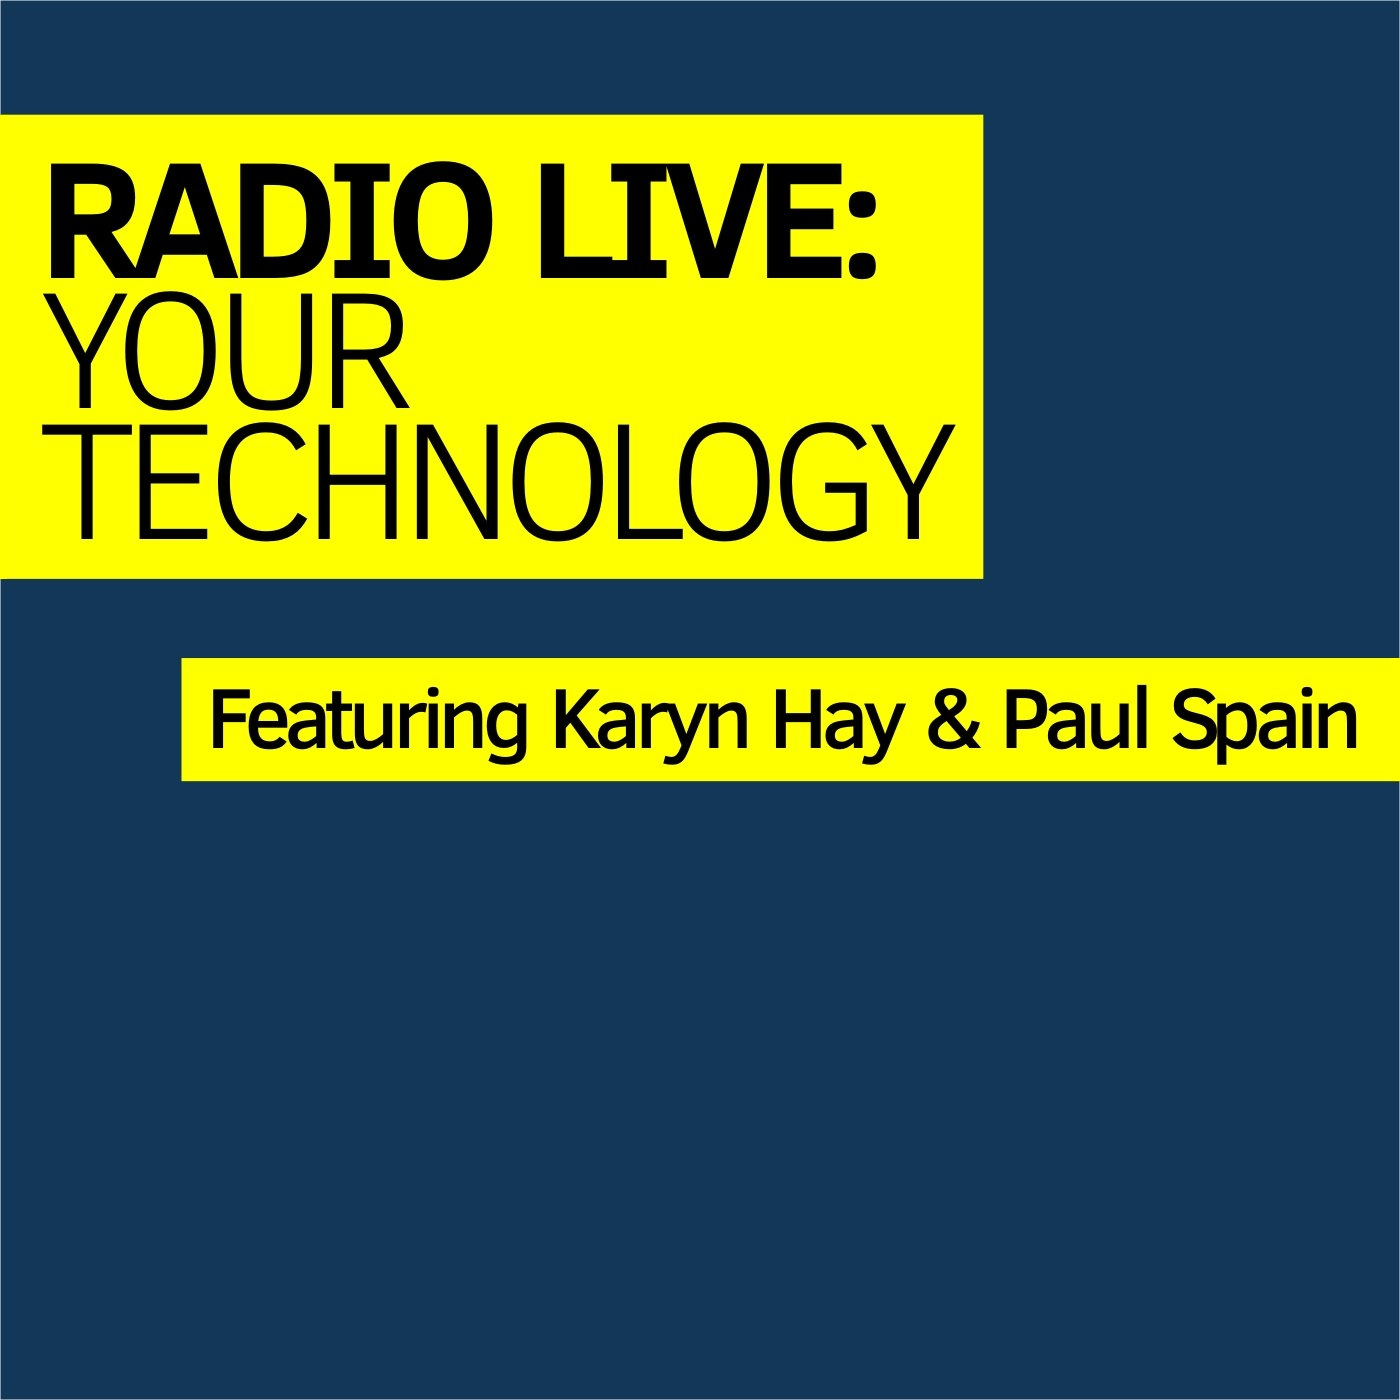 Radio Live: Your Technology